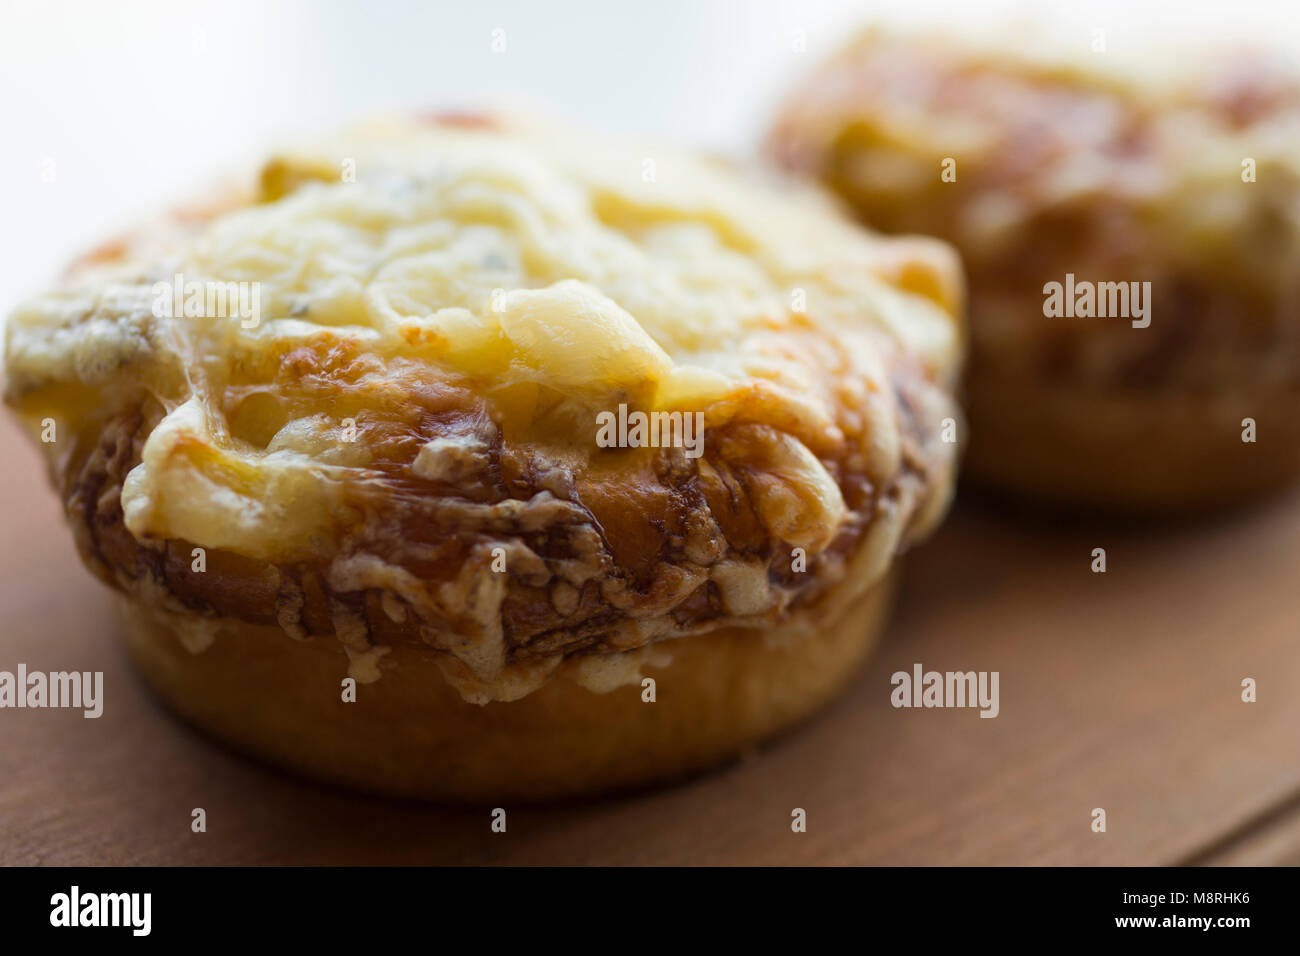 Close-up of fried food served on wooden table - Stock Image